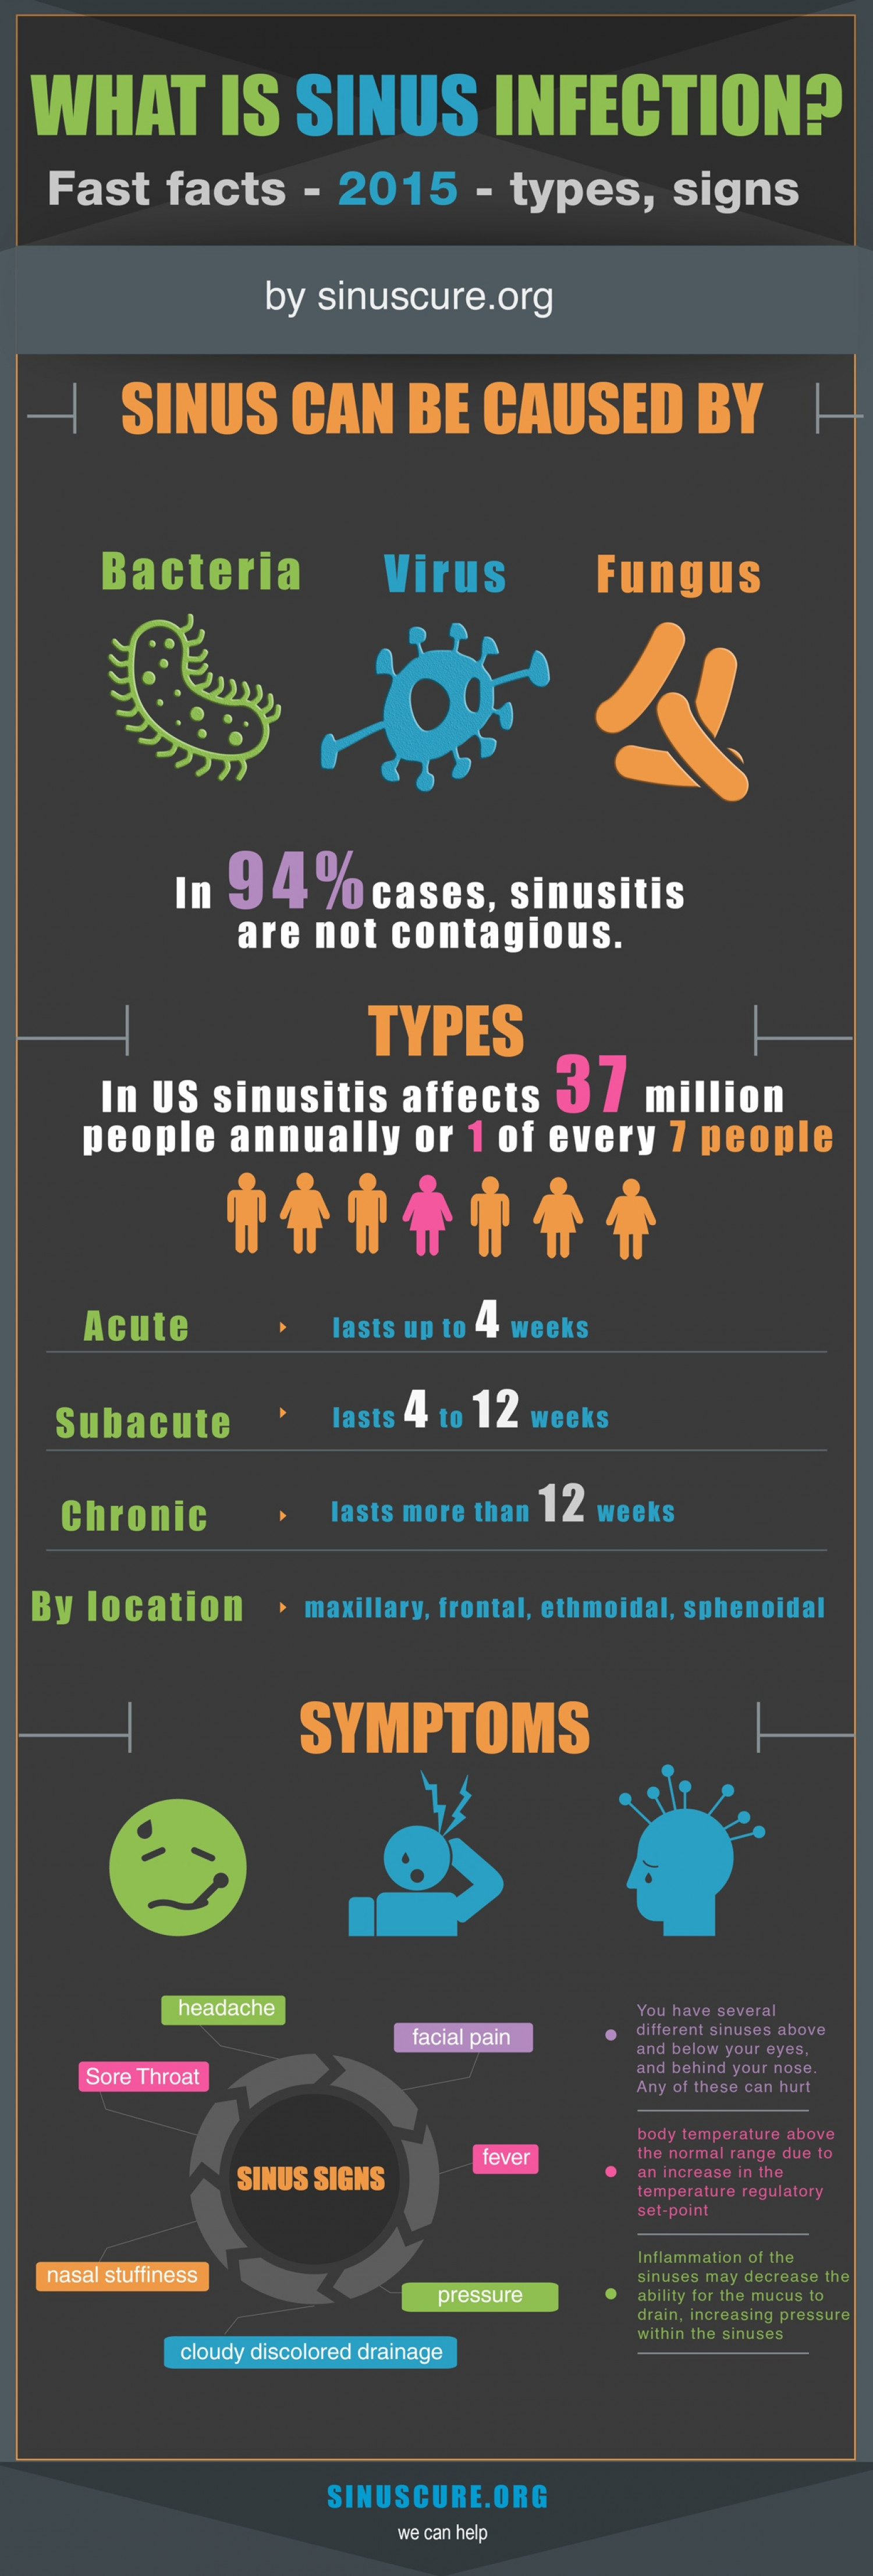 What is Sinus Infection?